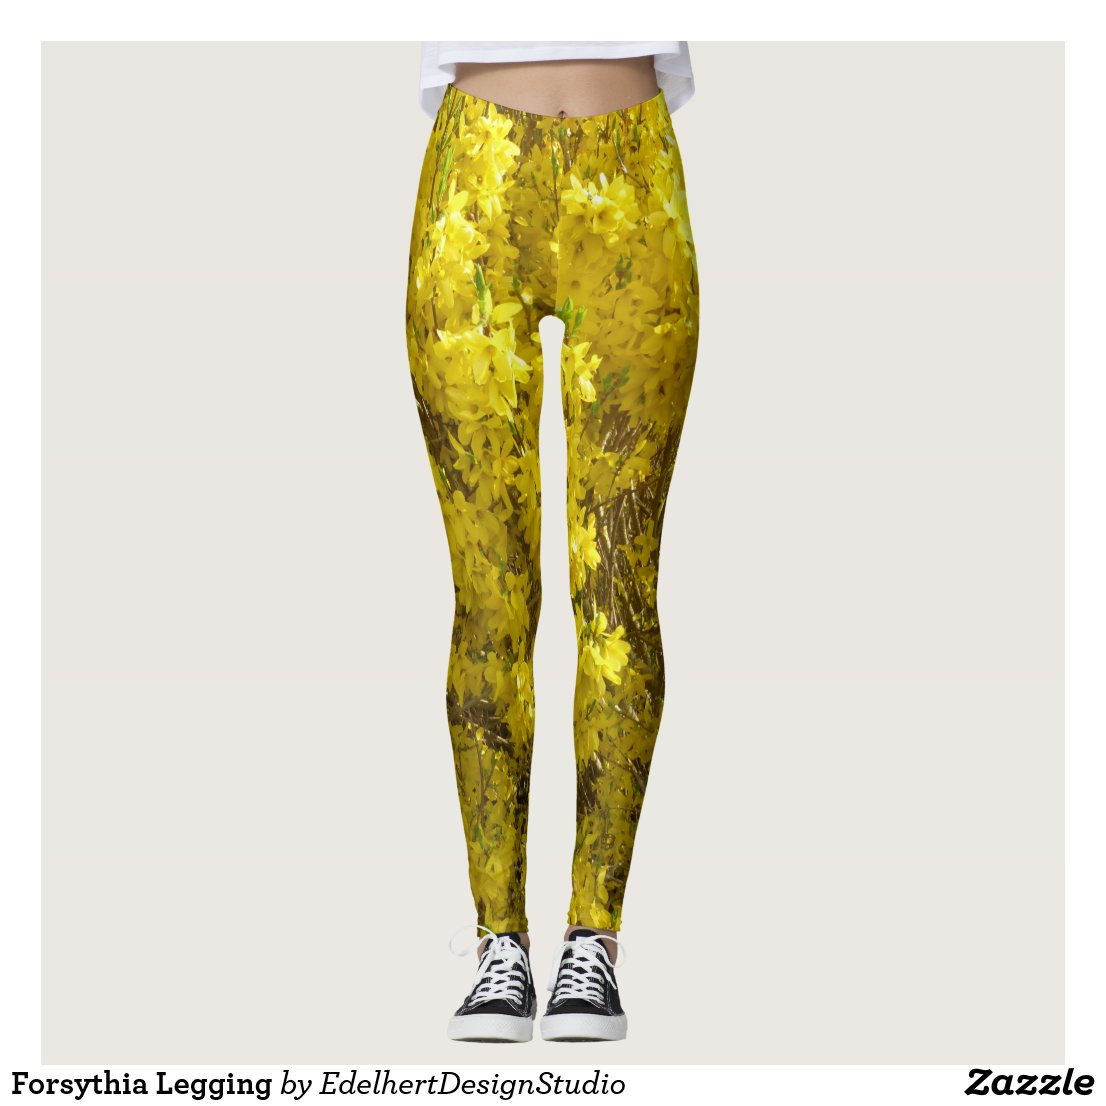 Forsythia Legging